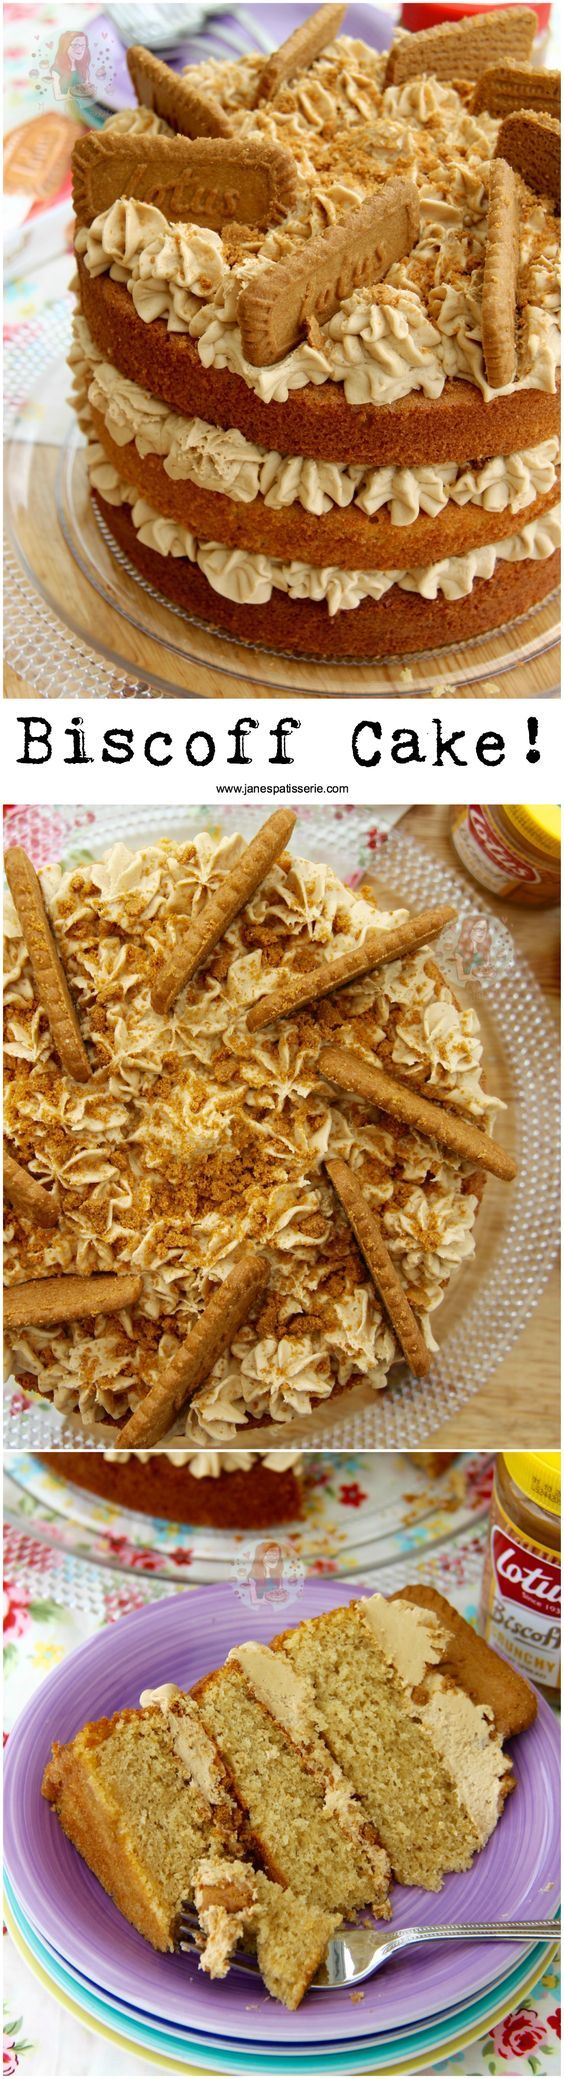 Biscoff Cake!! ❤️ A Delicious and Moist 3-layer Biscoff Cake with Lotus Biscuits! Perfect Spiced and Sweet cake for all Biscoff Lovers out there!